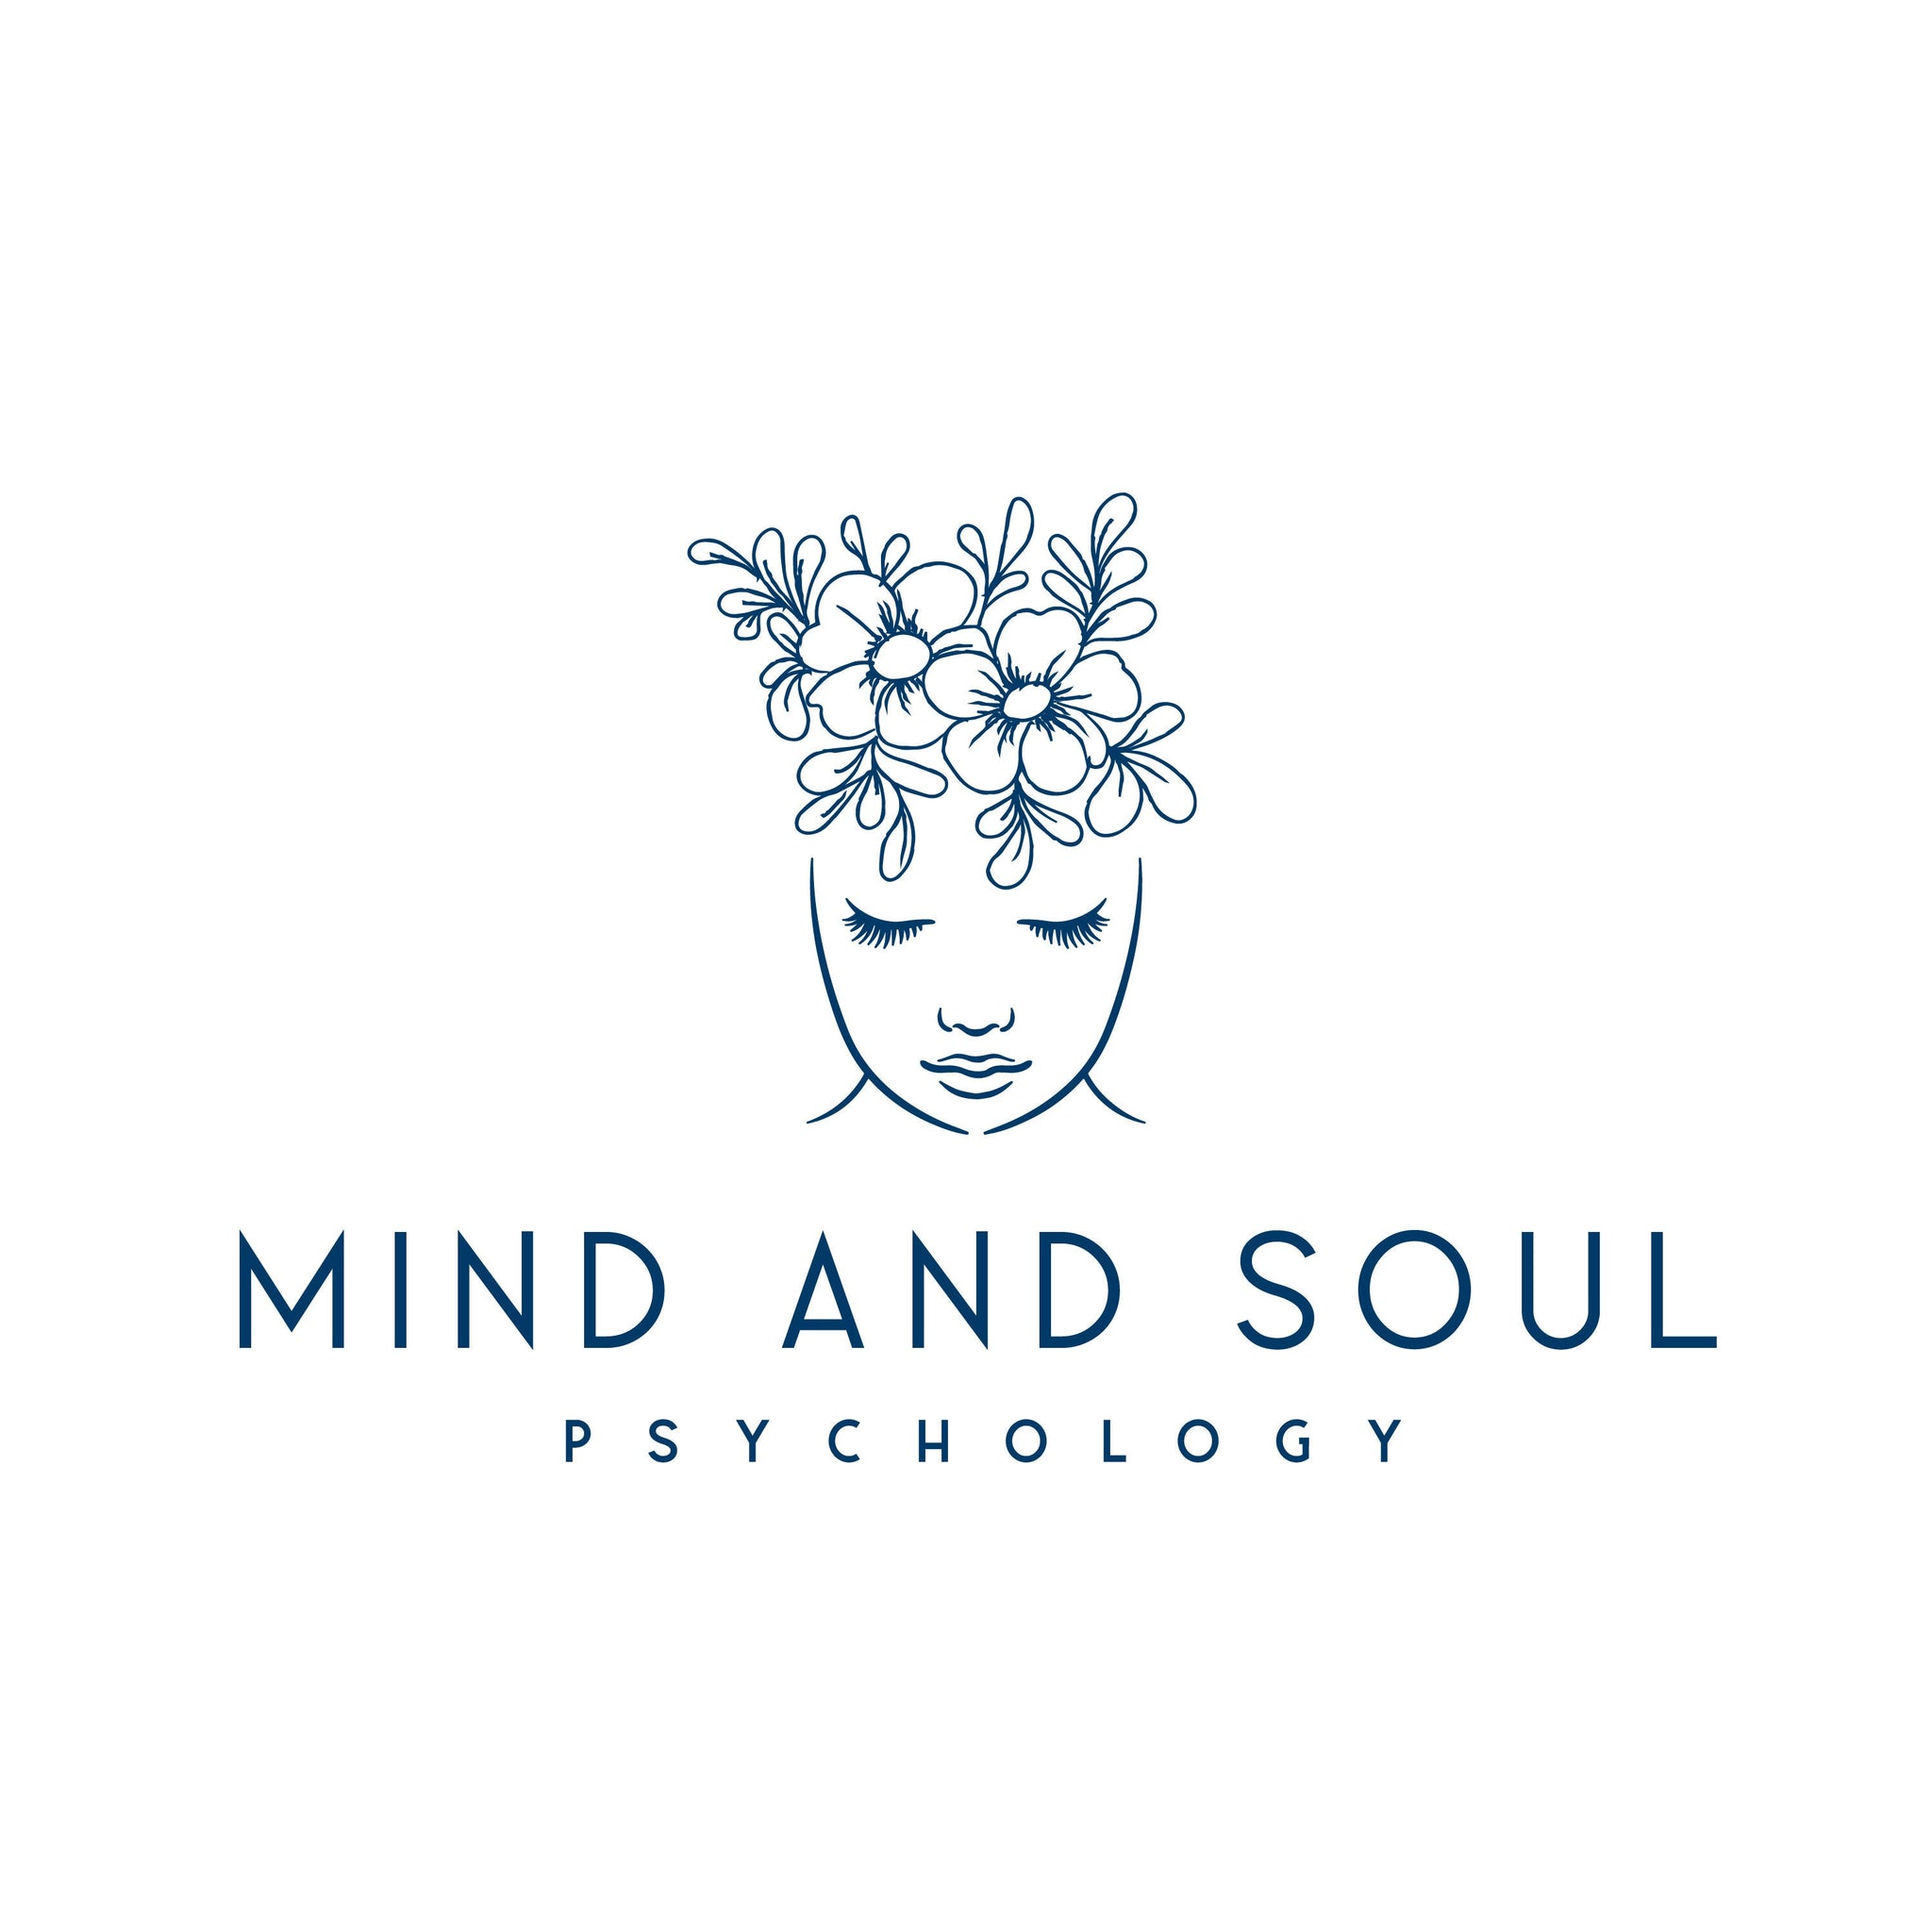 Psychologist logo design, Photography branding Business logo design, Pre made Logo and Watermark, Unique Floral Beauty logo branding